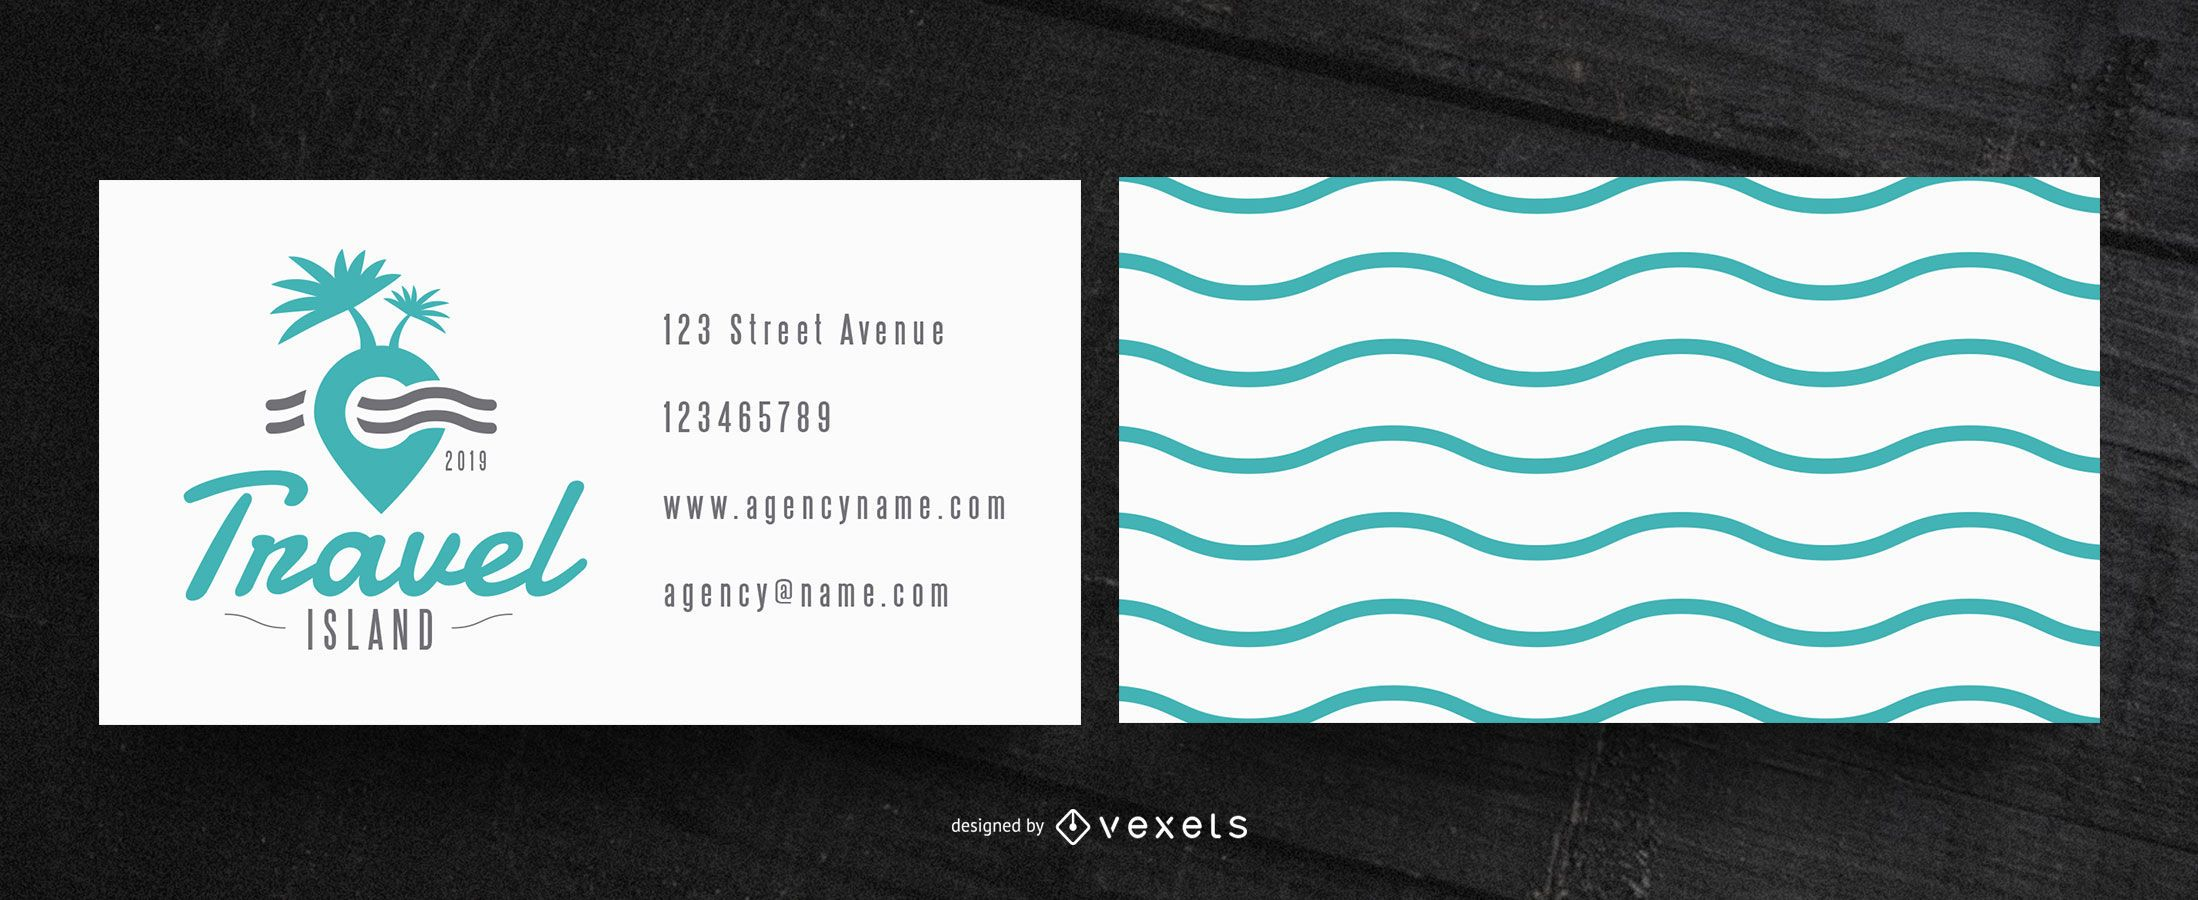 Travel simple business card